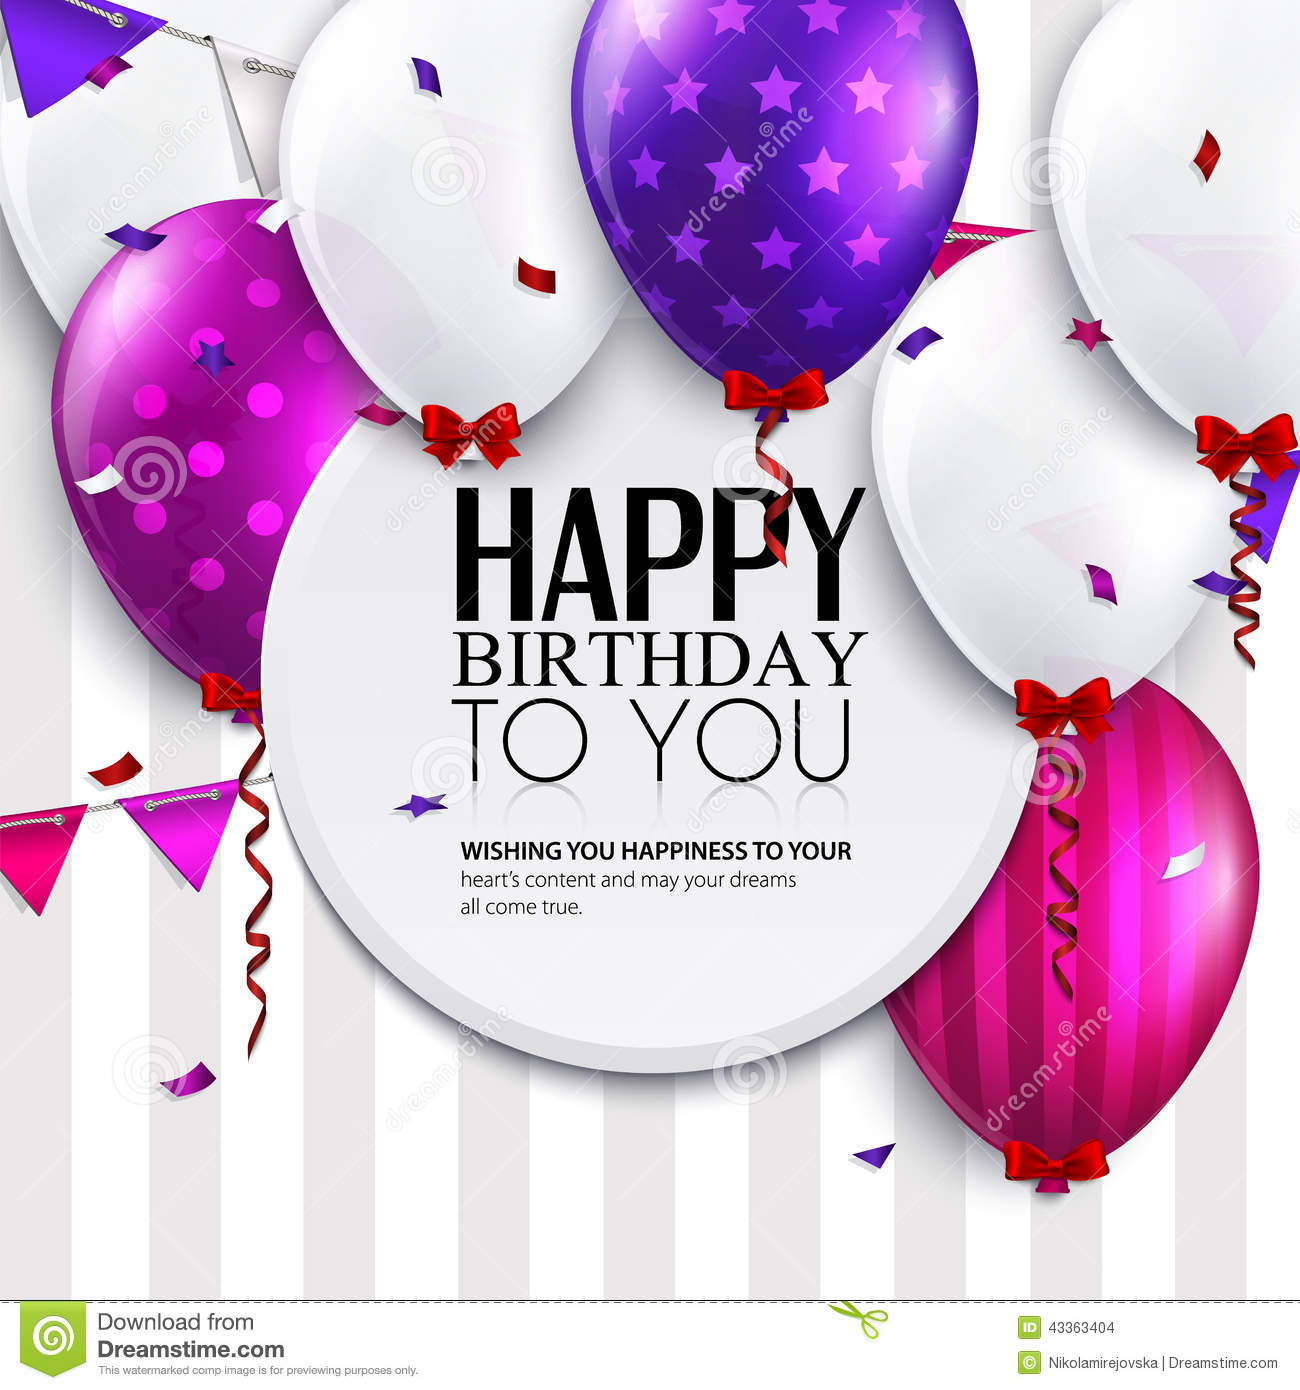 free vector birthday card designs ; vector-birthday-card-balloons-bunting-flags-stripes-background-43363404